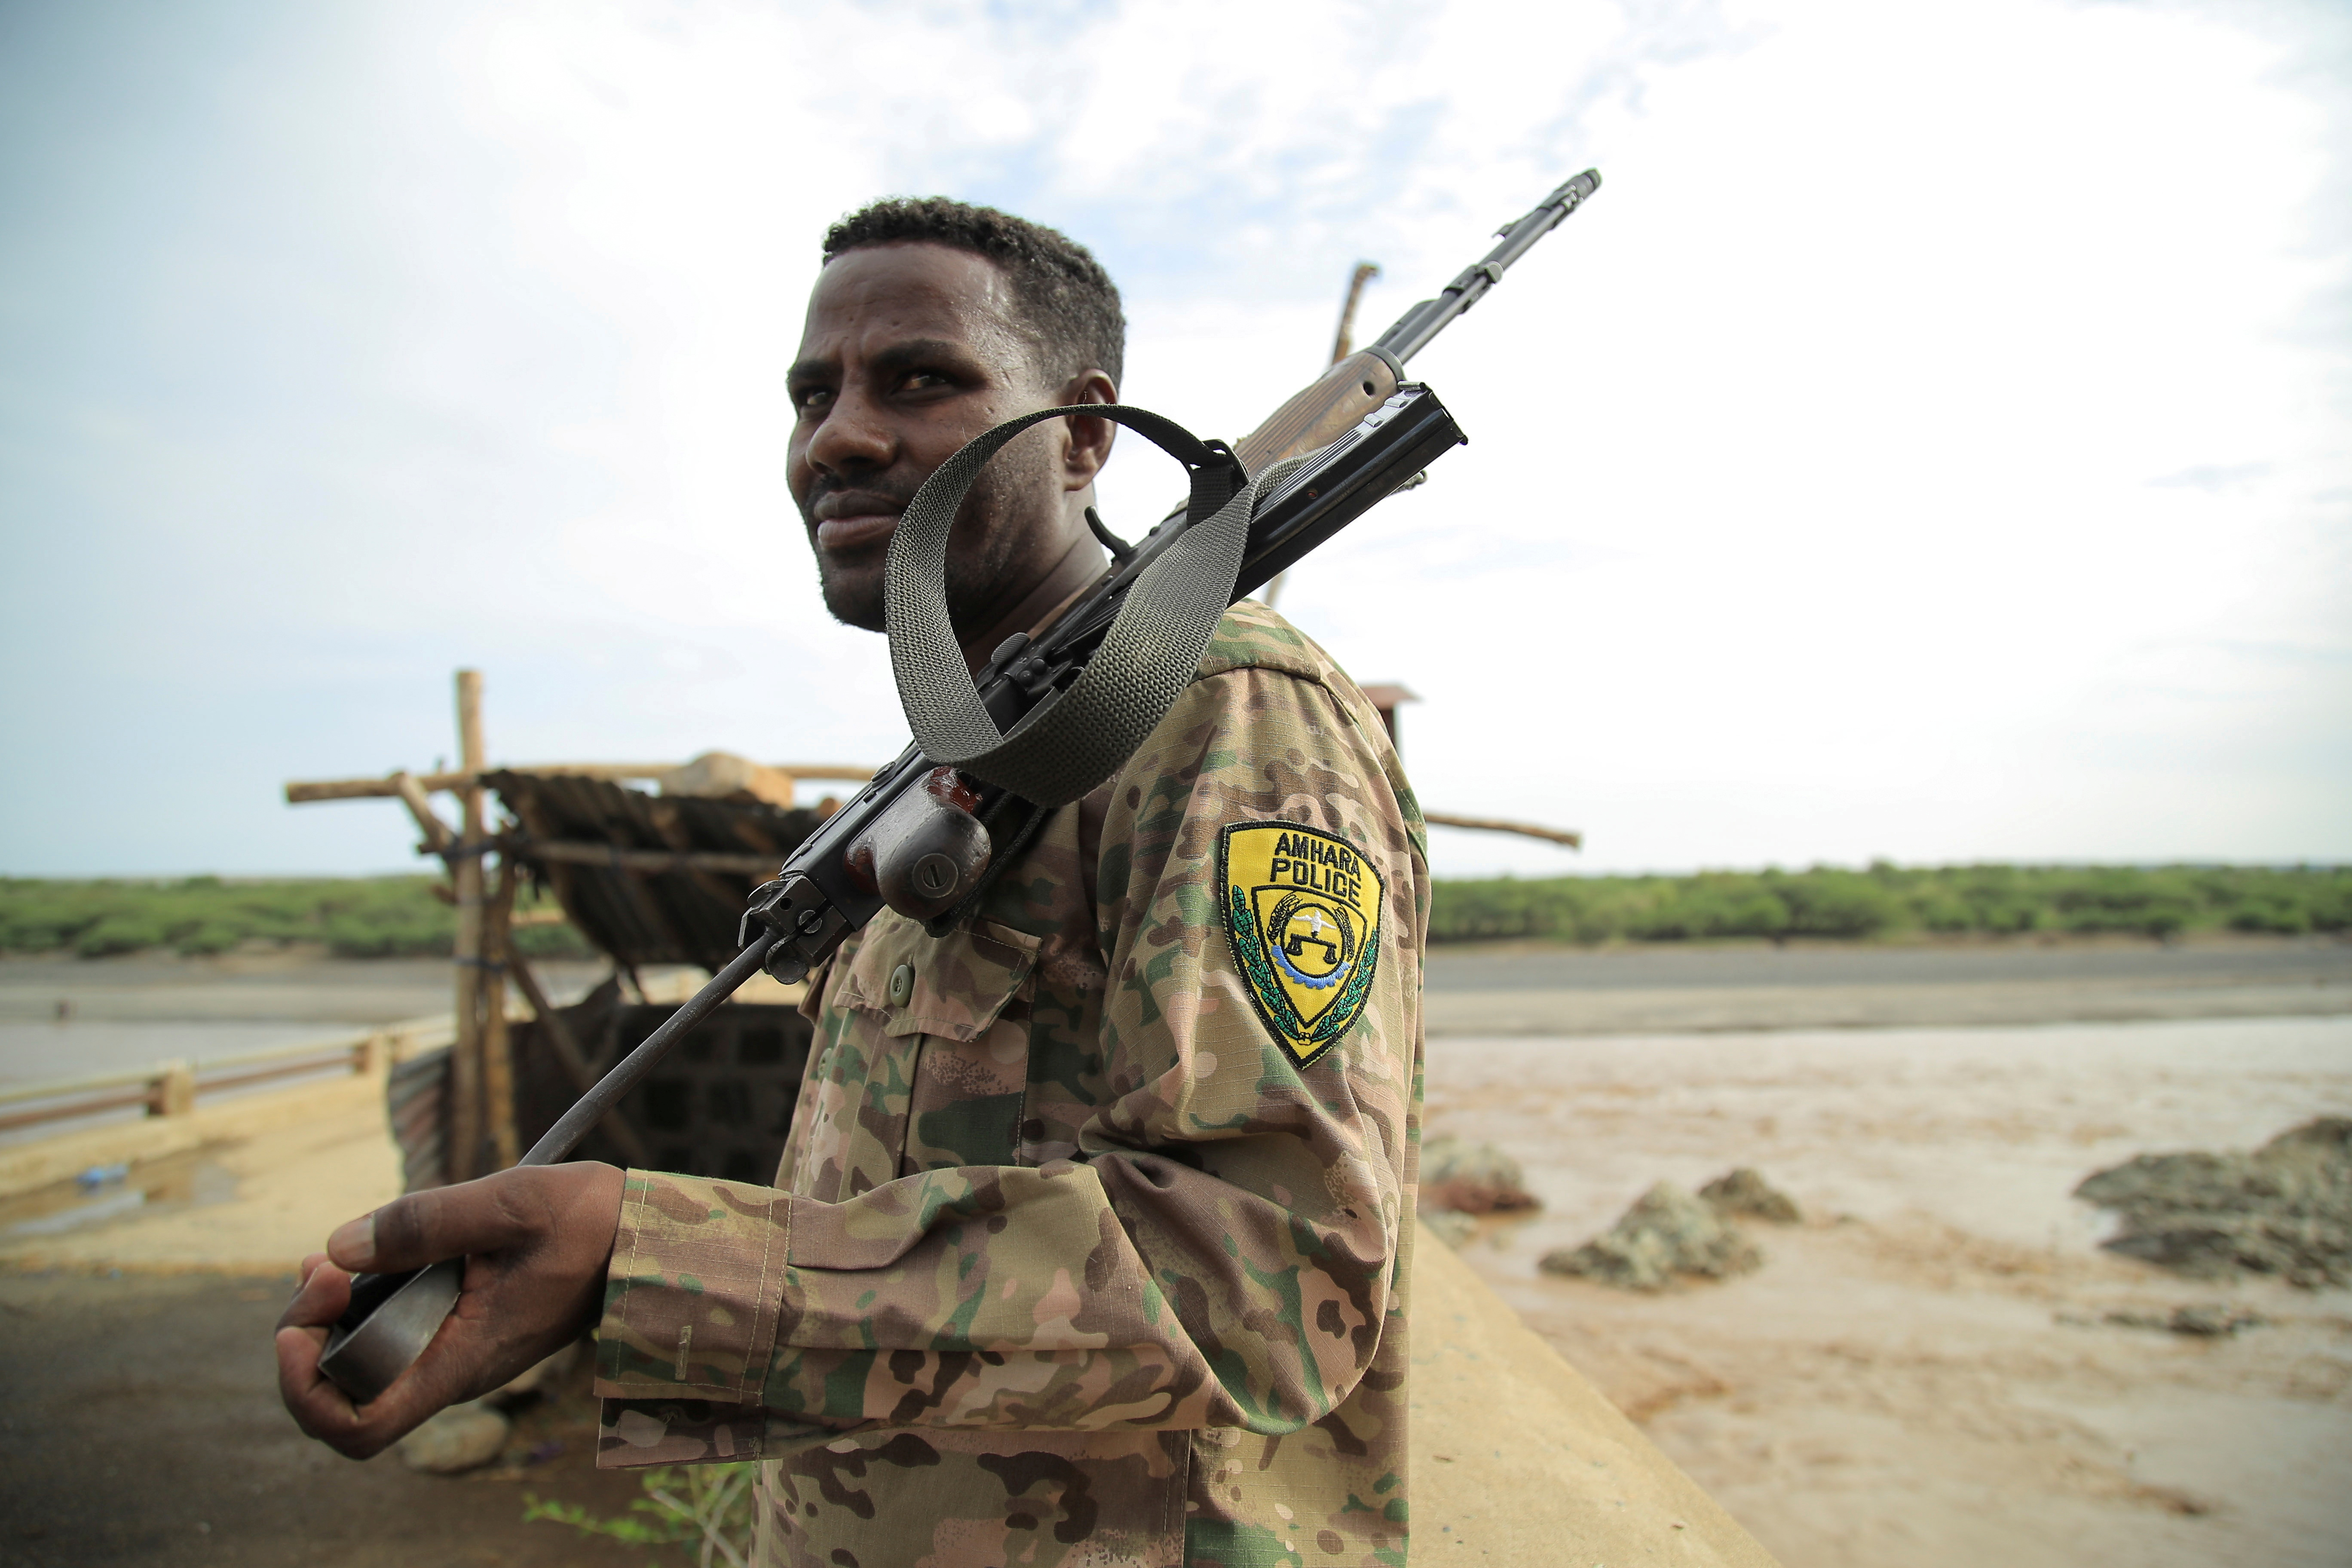 An Amhara Special Force member stands guard on Ethiopia-Eritrean border near in Humera town, Ethiopia July 1, 2021. Picture taken July 1, 2021. REUTERS/Stringer/File Photo